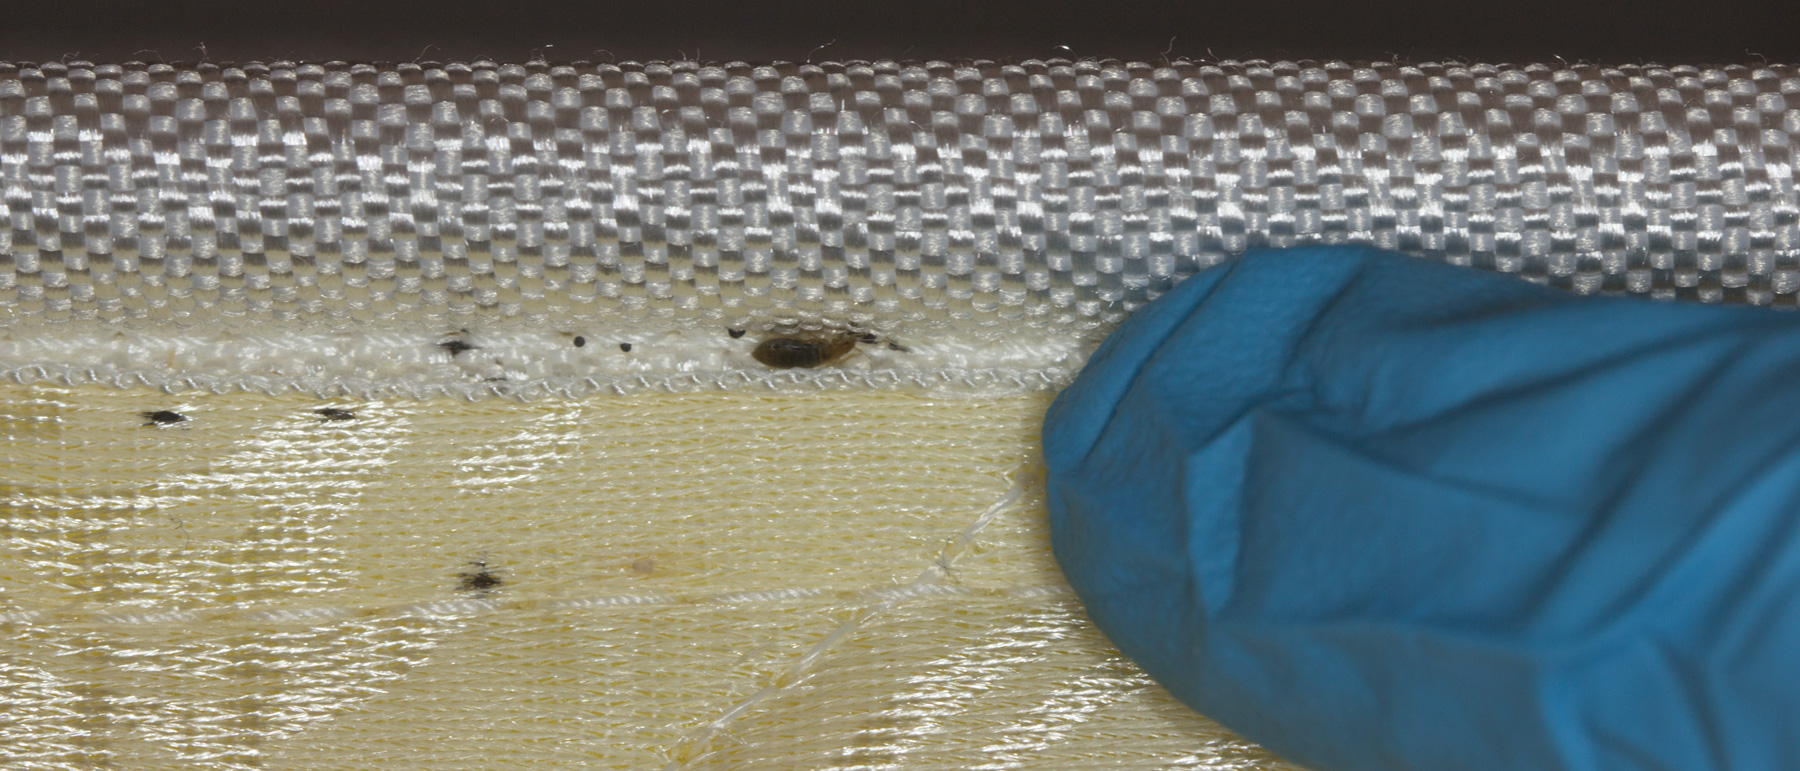 Bed Bug and Excrements Mattress Piping